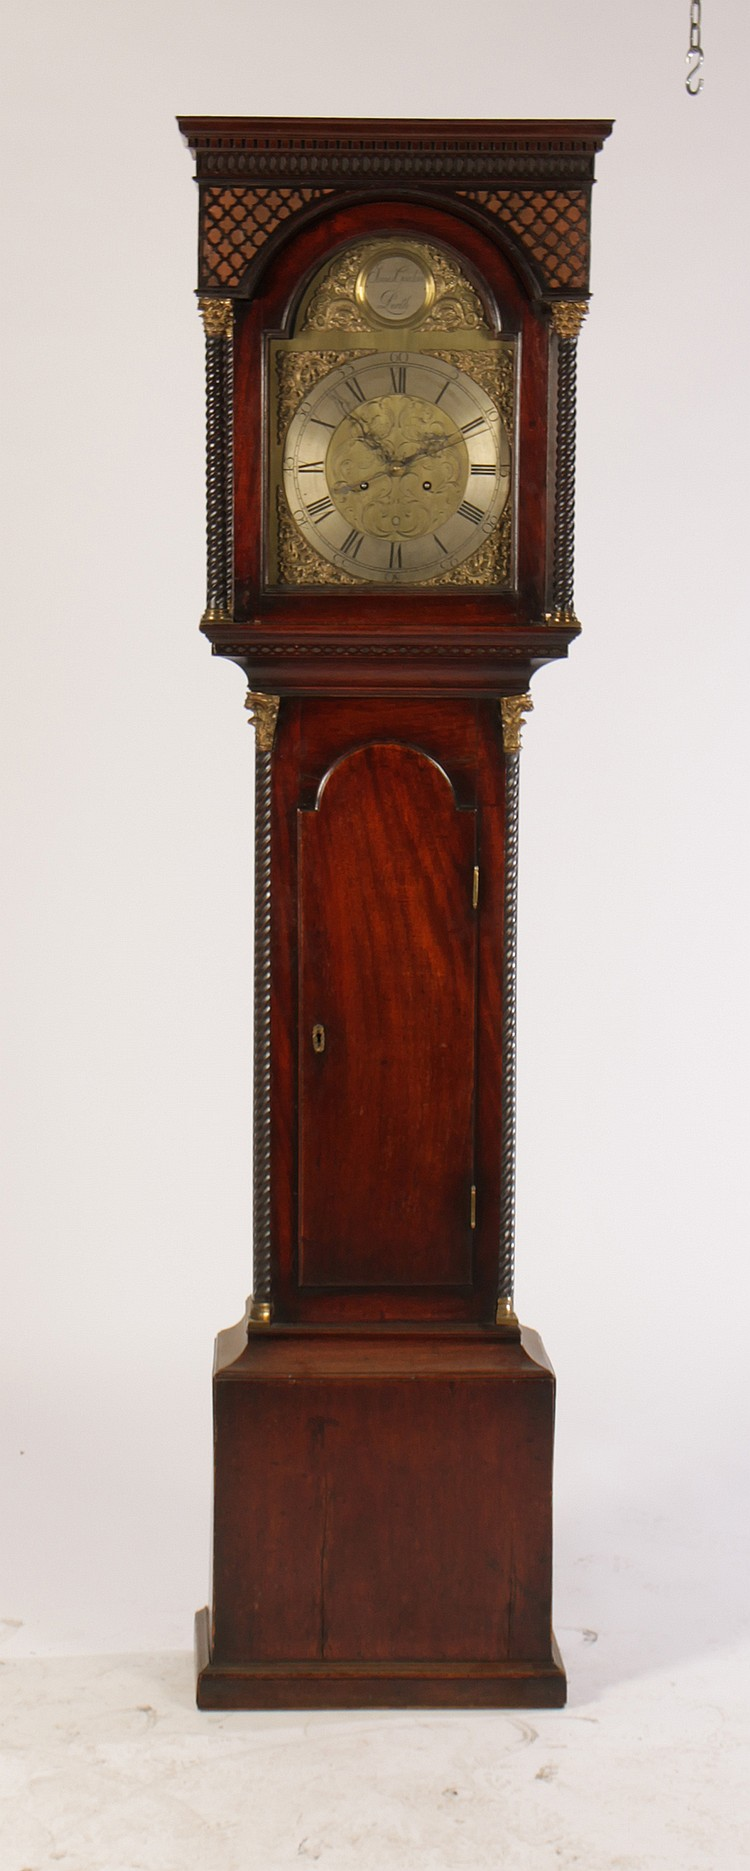 James Gordon Perth Tall Case Clock Circa 1880